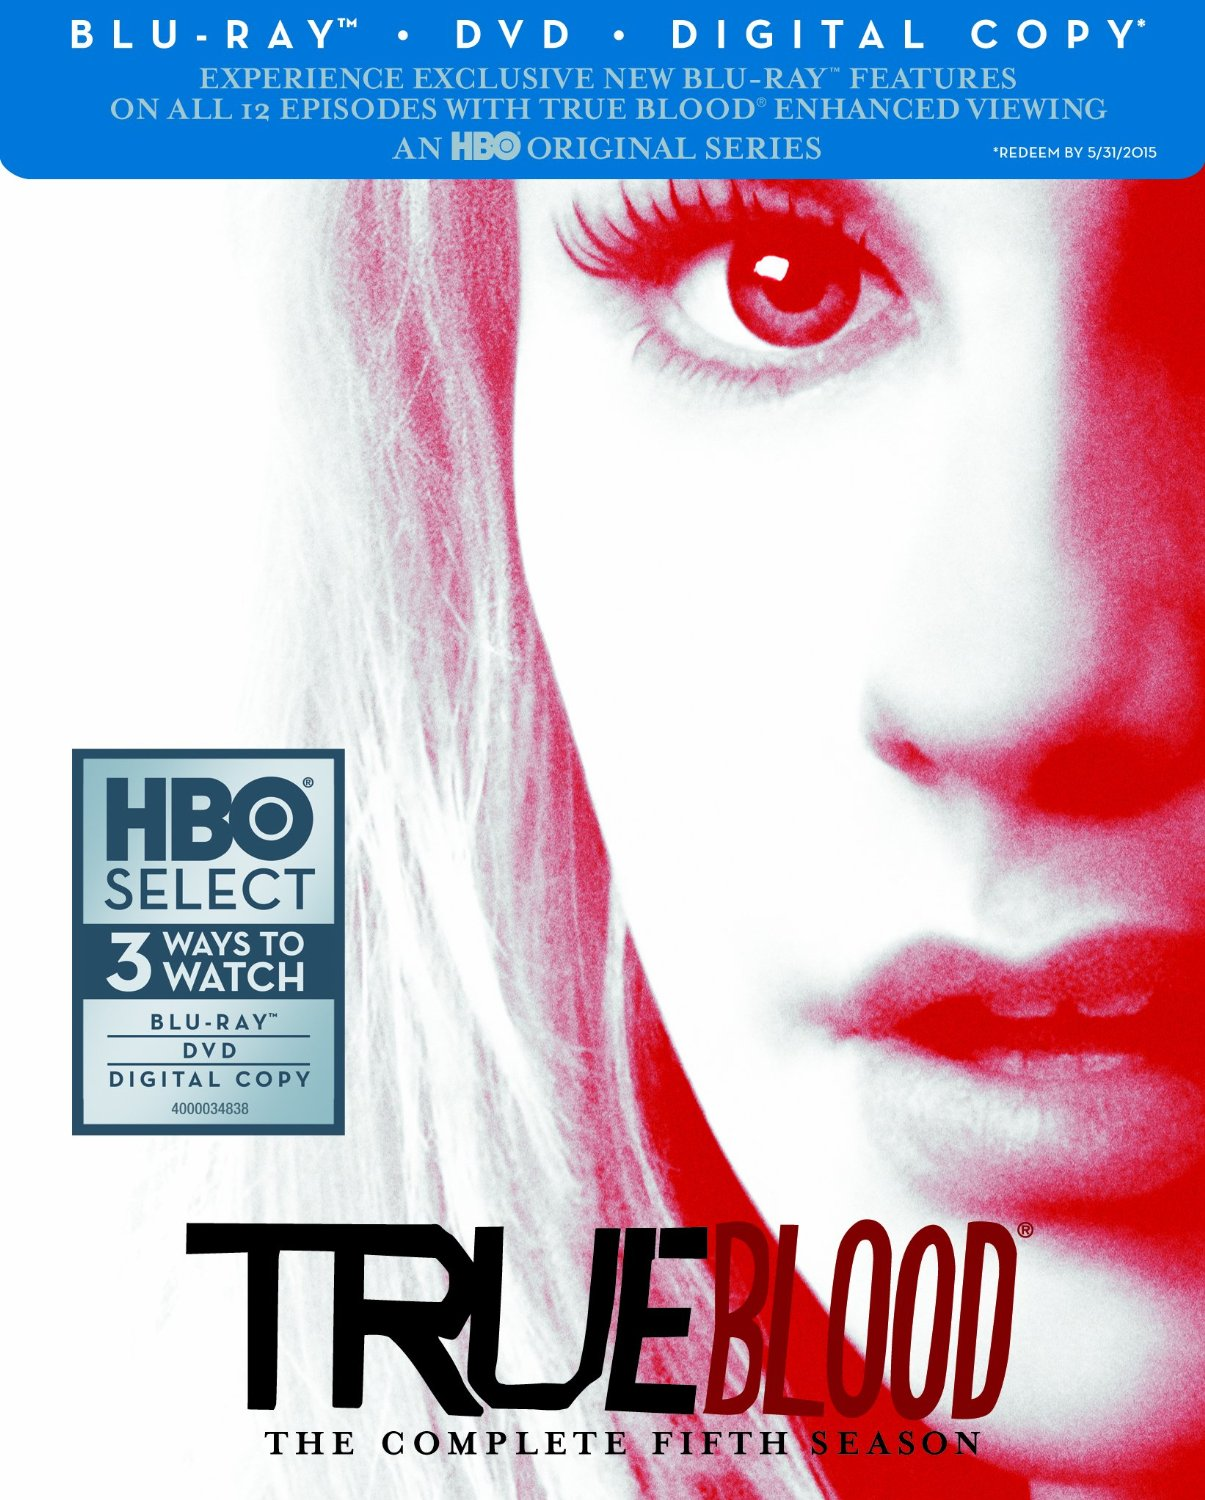 DVD Review: True Blood The Complete Fifth Season | Blogcritics